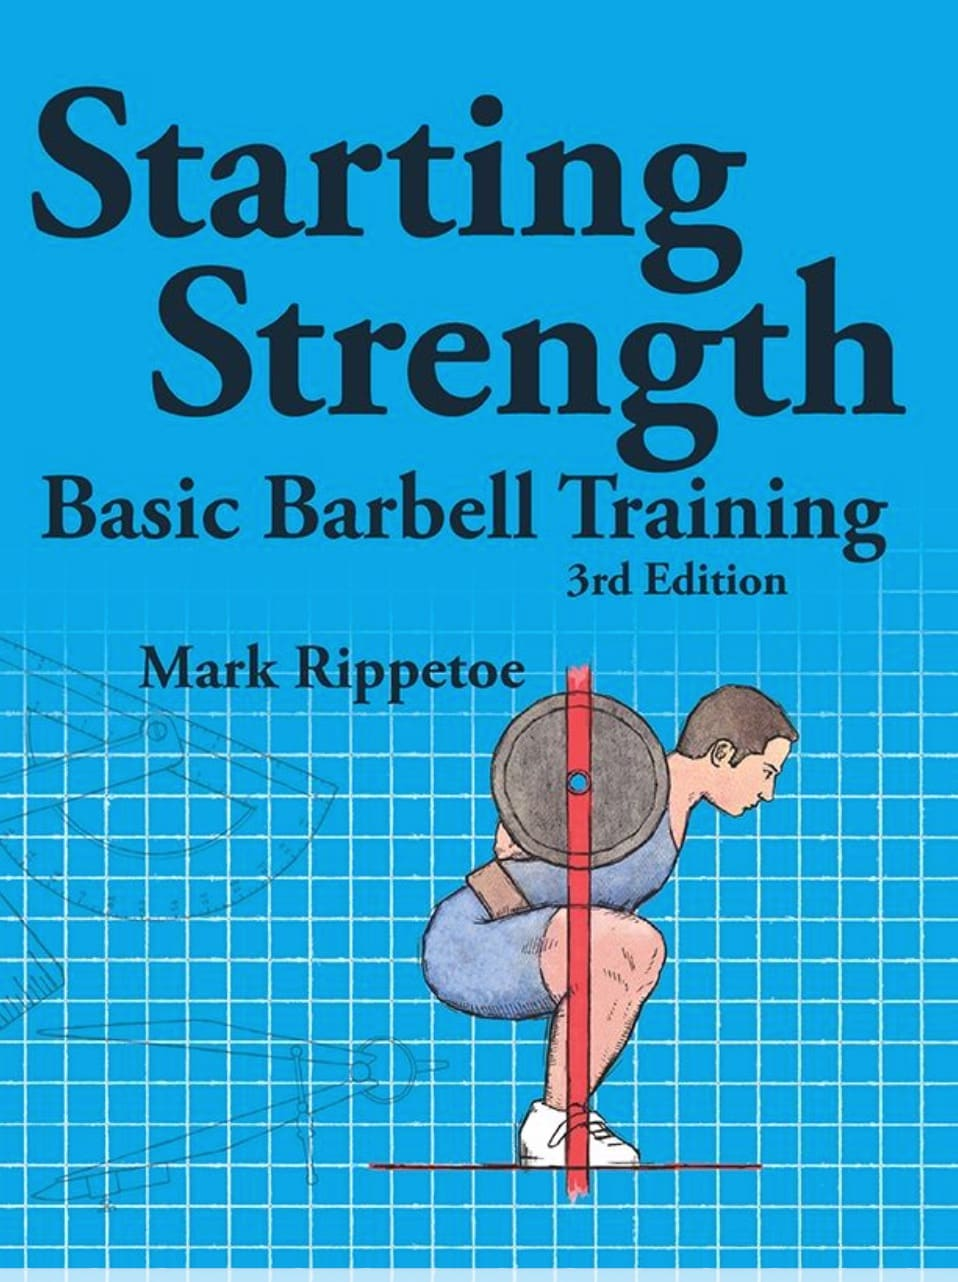 An epic introduction to the book Starting Strength by Mark Rippetoe